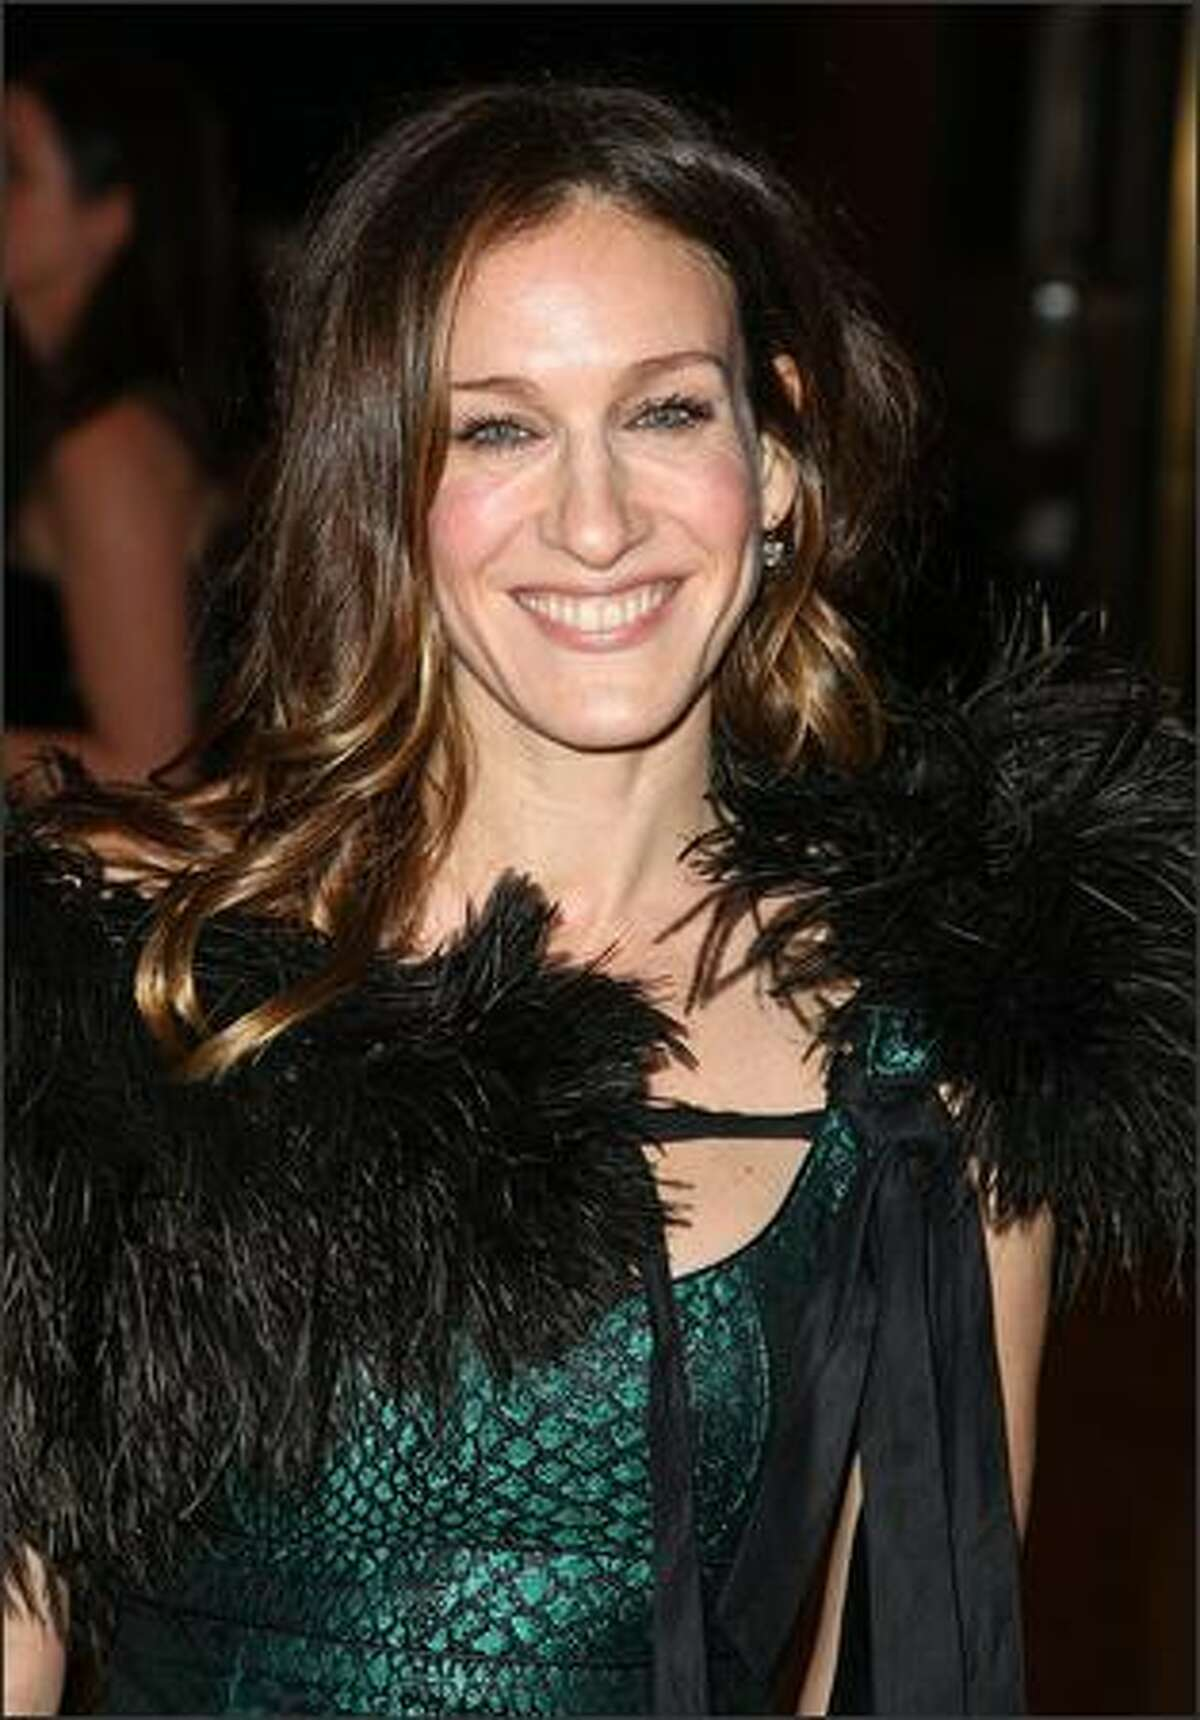 Actress Sarah Jessica Parker attends the School of American Ballet's winter ball at Lincoln Center in New York City.